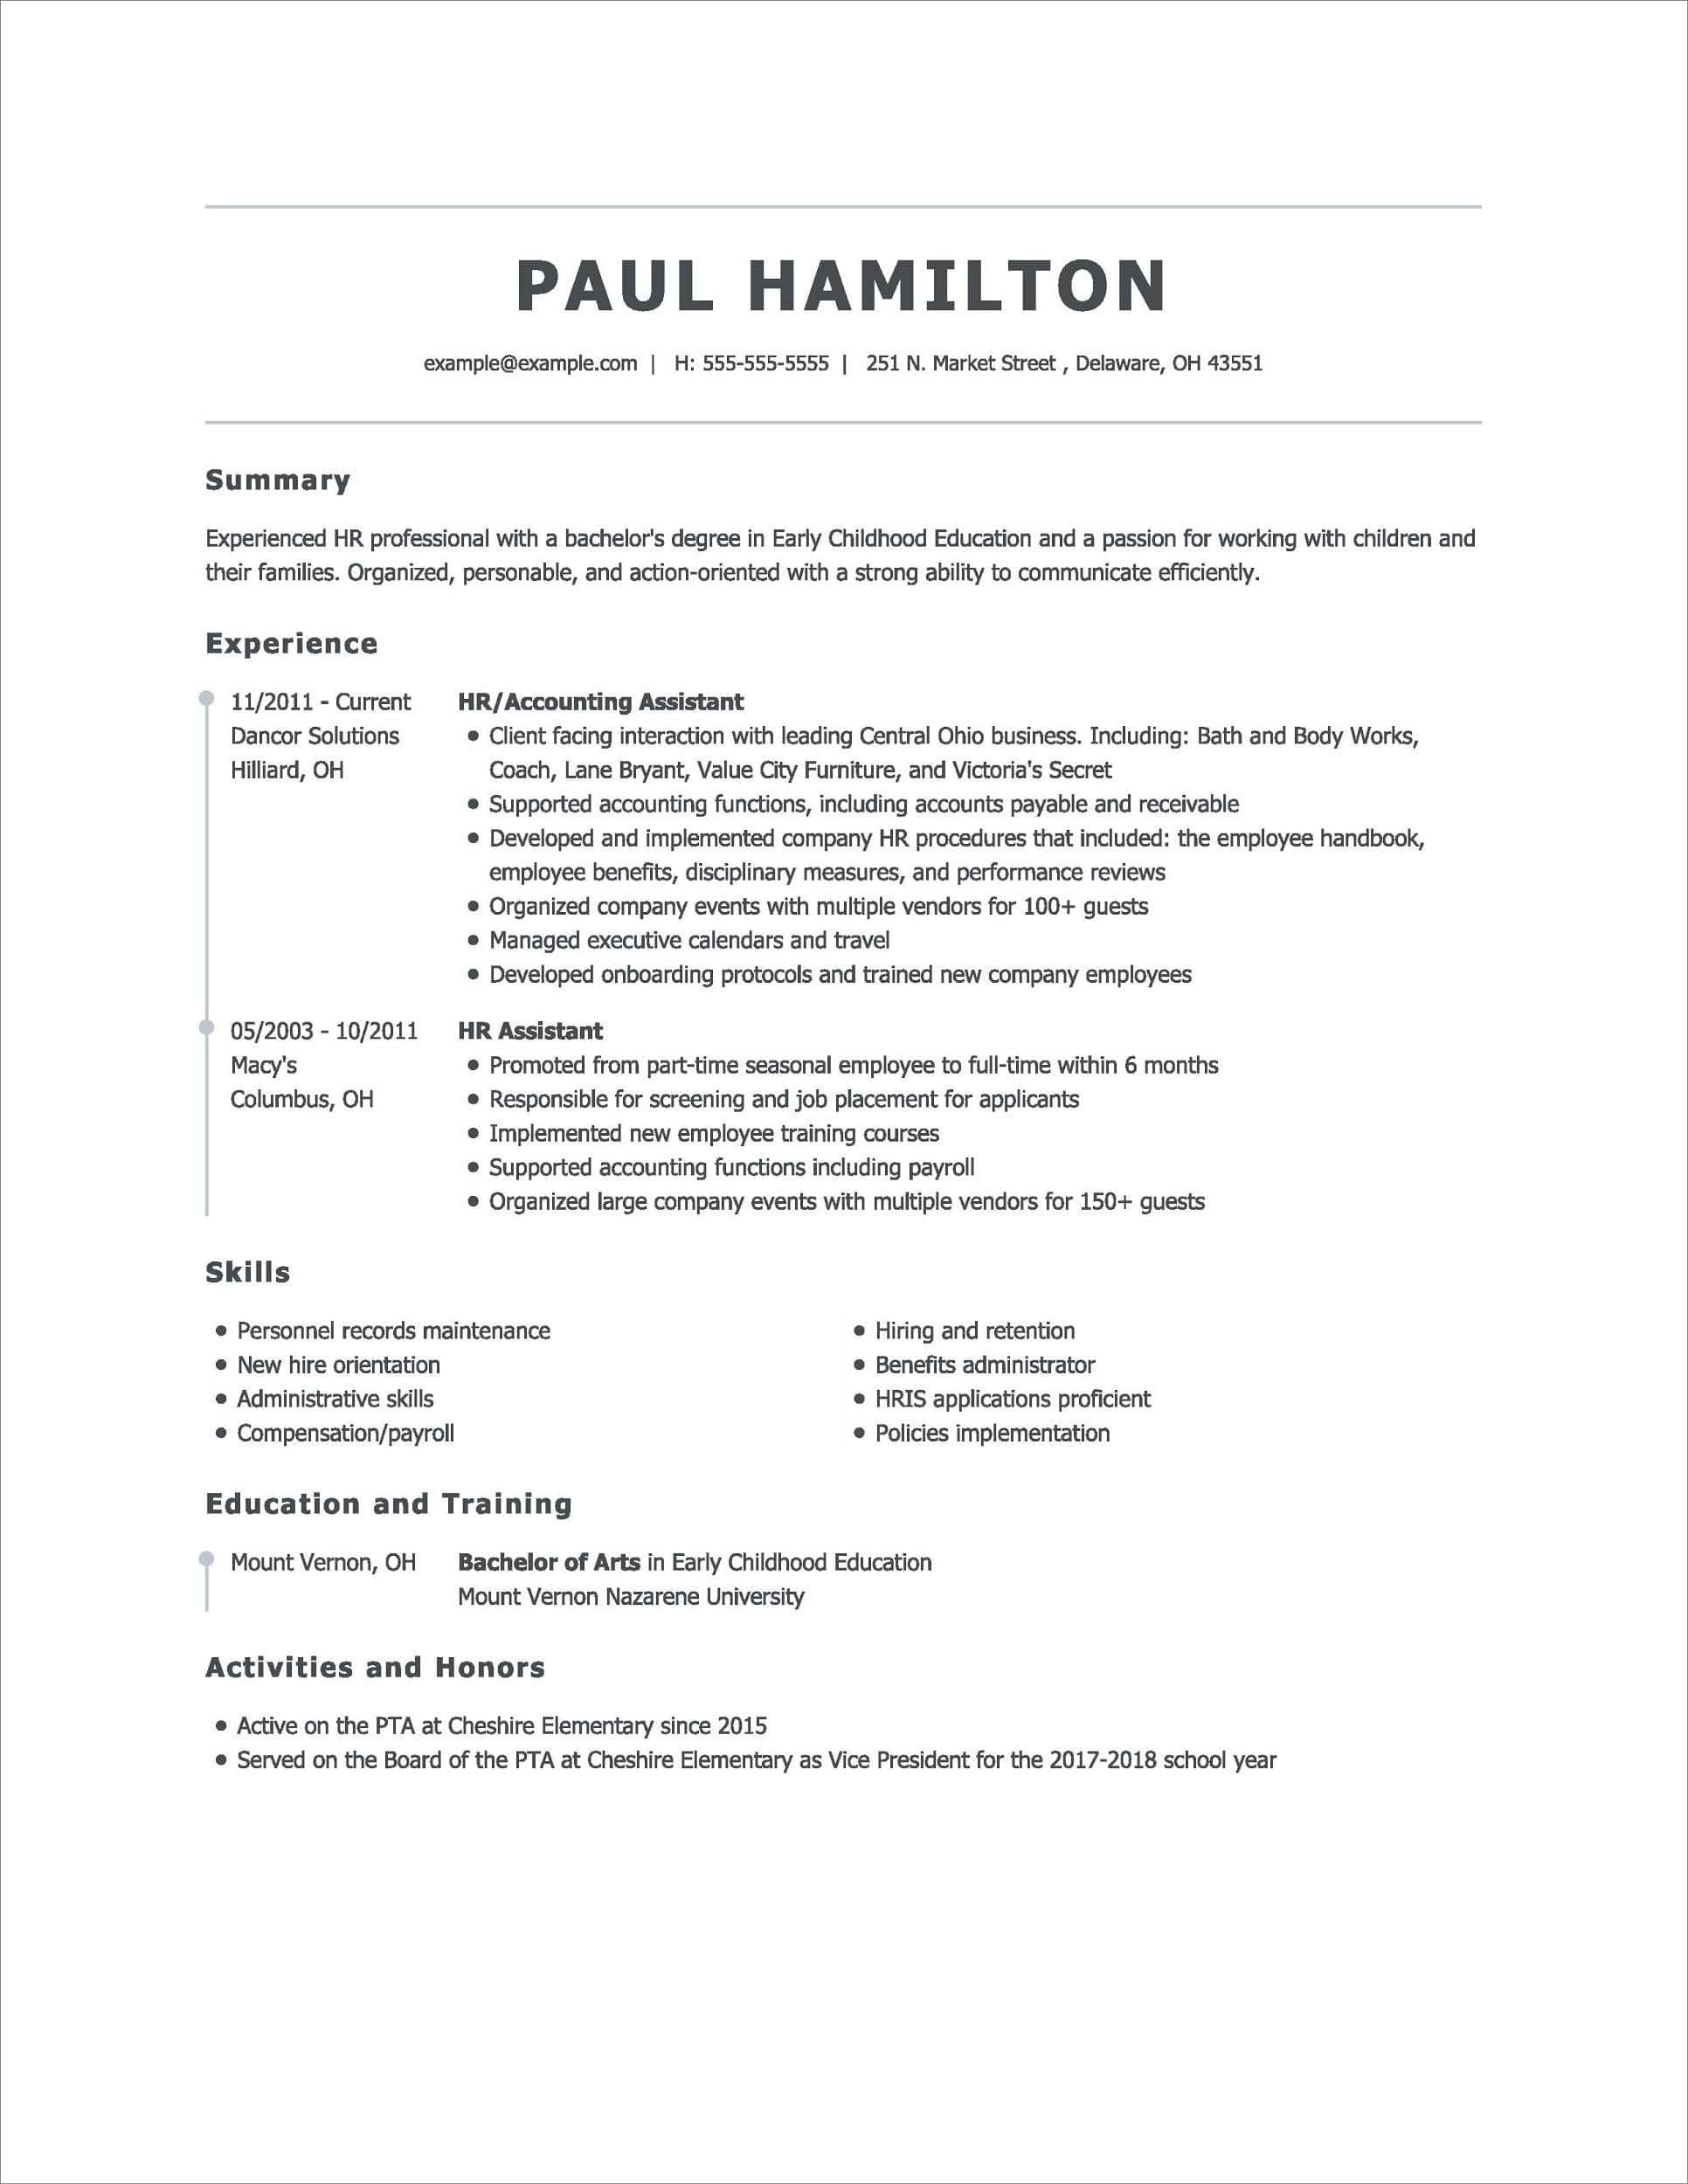 best resume builders free paid features builder for students linkedin services sample law Resume Resume Builder For Students